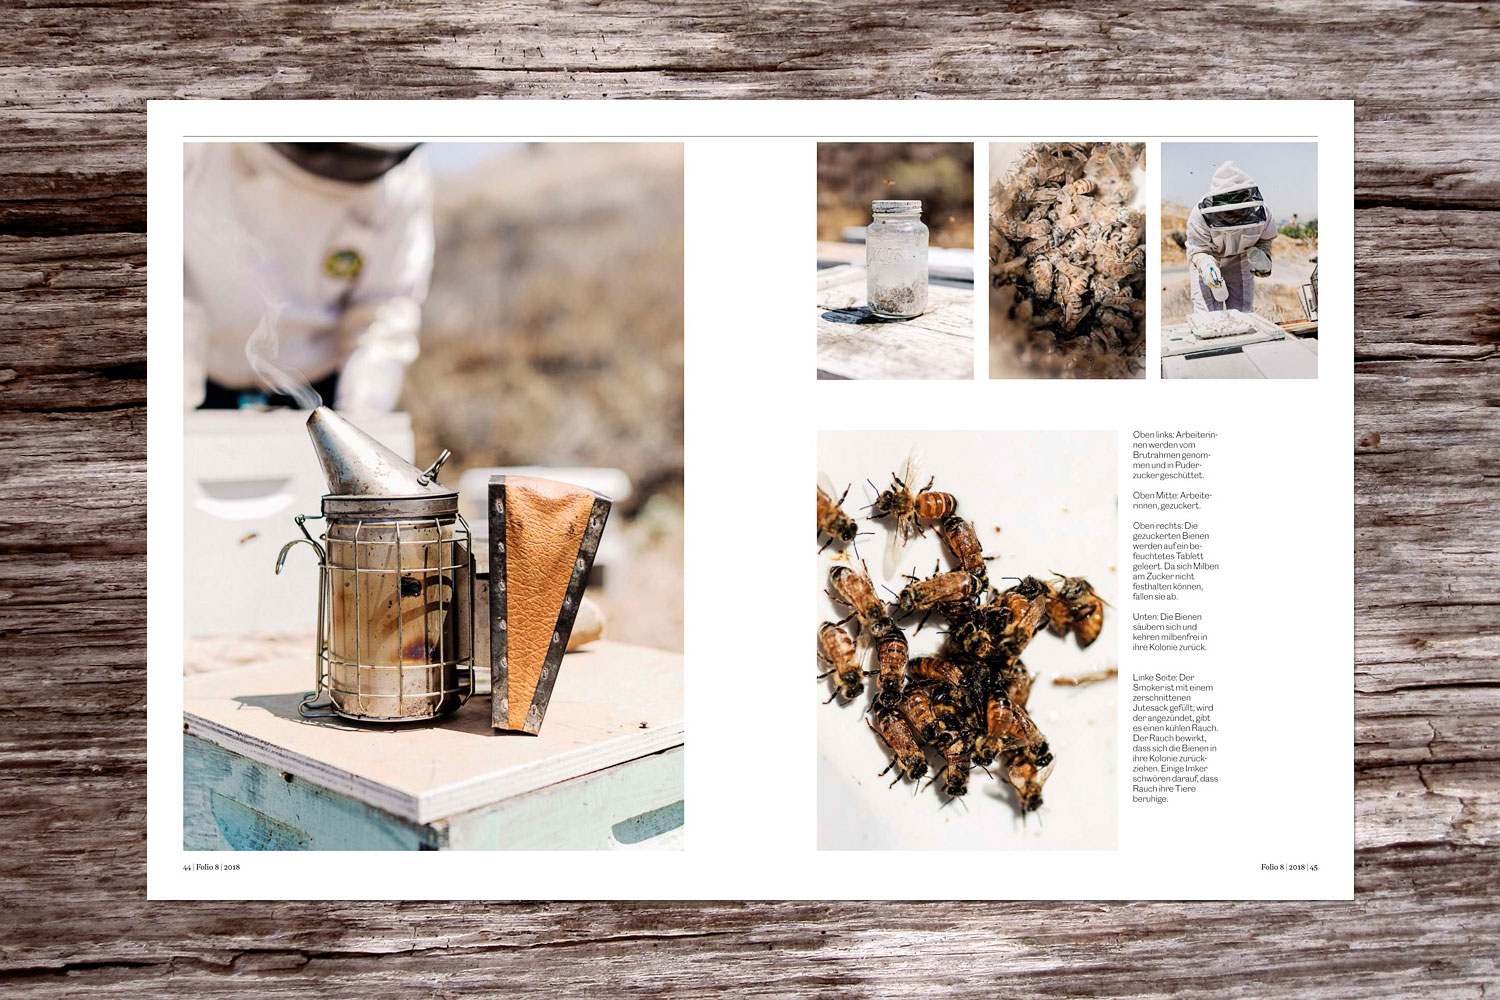 PATRICK STRATTNER PHOTOGRAPHY | TEAR SHEETS | Center for Integrative Bee Research (CIBER) / NZZ Folio